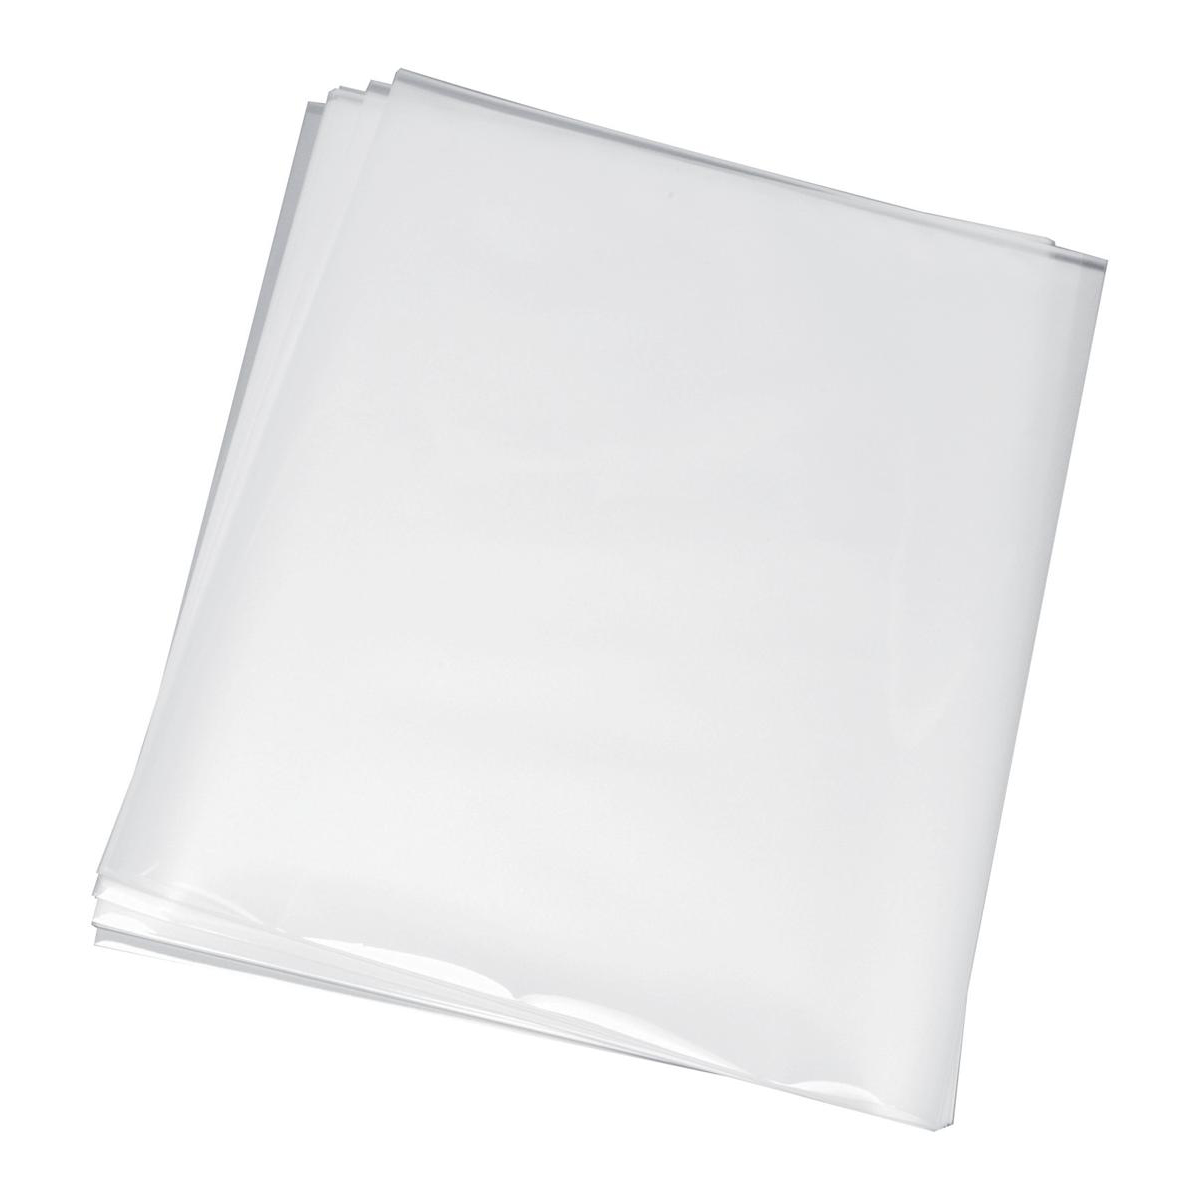 Laminating Film & Pockets 5 Star Office Laminating Pouches 250 micron for A5 Gloss Pack 100